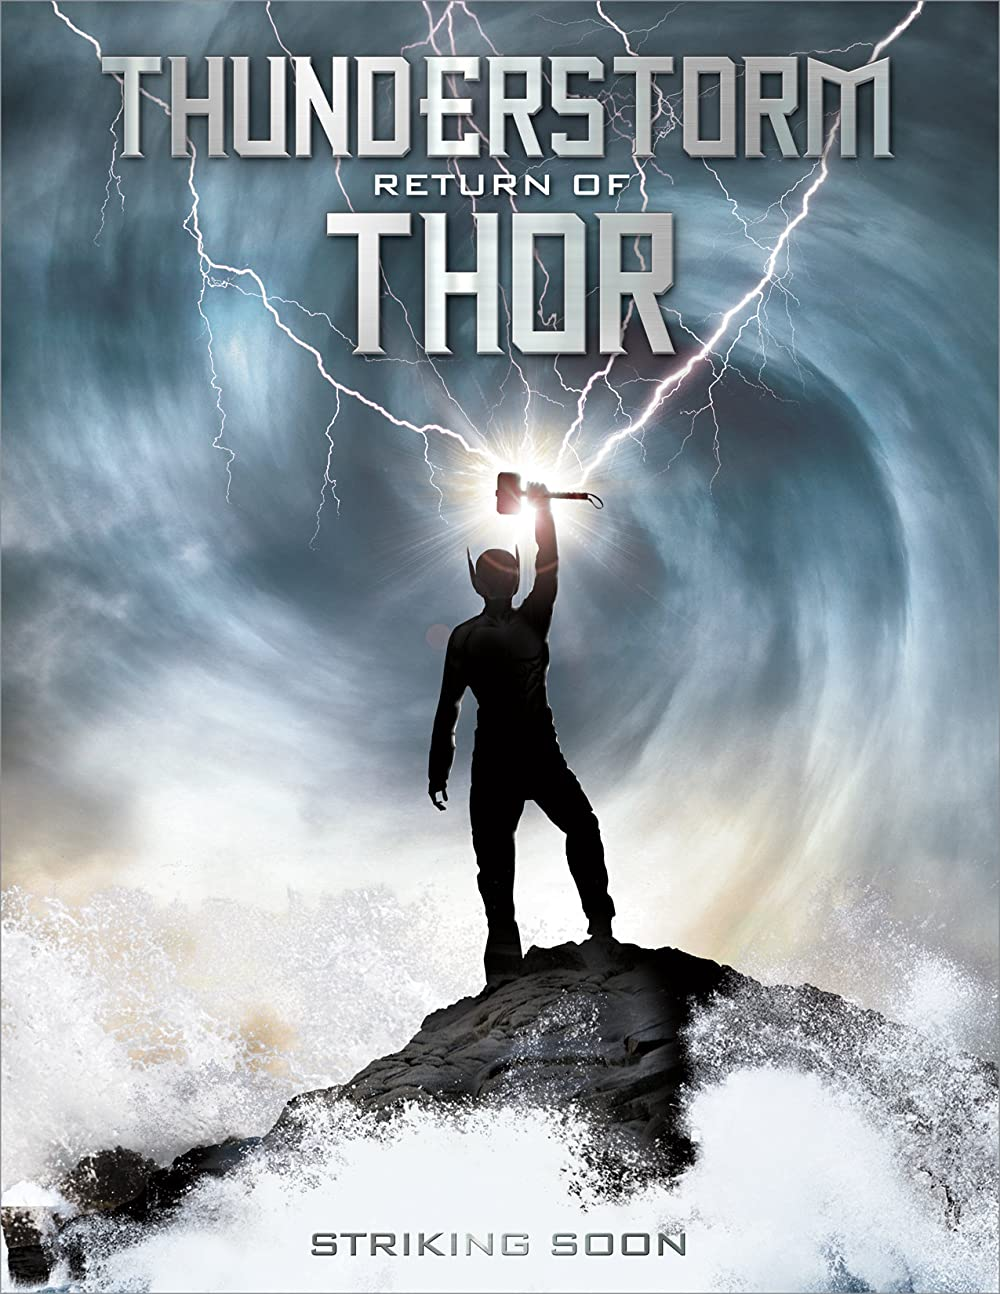 Thunderstorm The Return of Thor 2011 Dual Audio Hindi 310MB BluRay Download